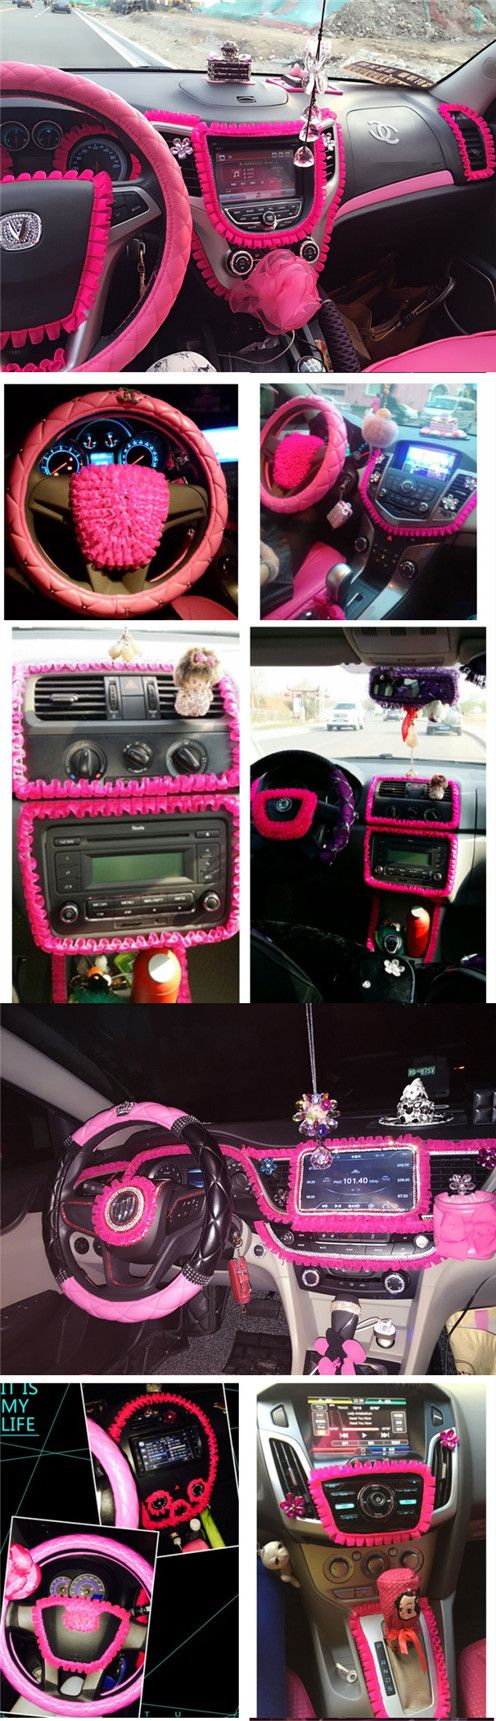 Best Car Interior Decor Ideas On Pinterest DIY Interior Auto - How to make homemade decals for cars